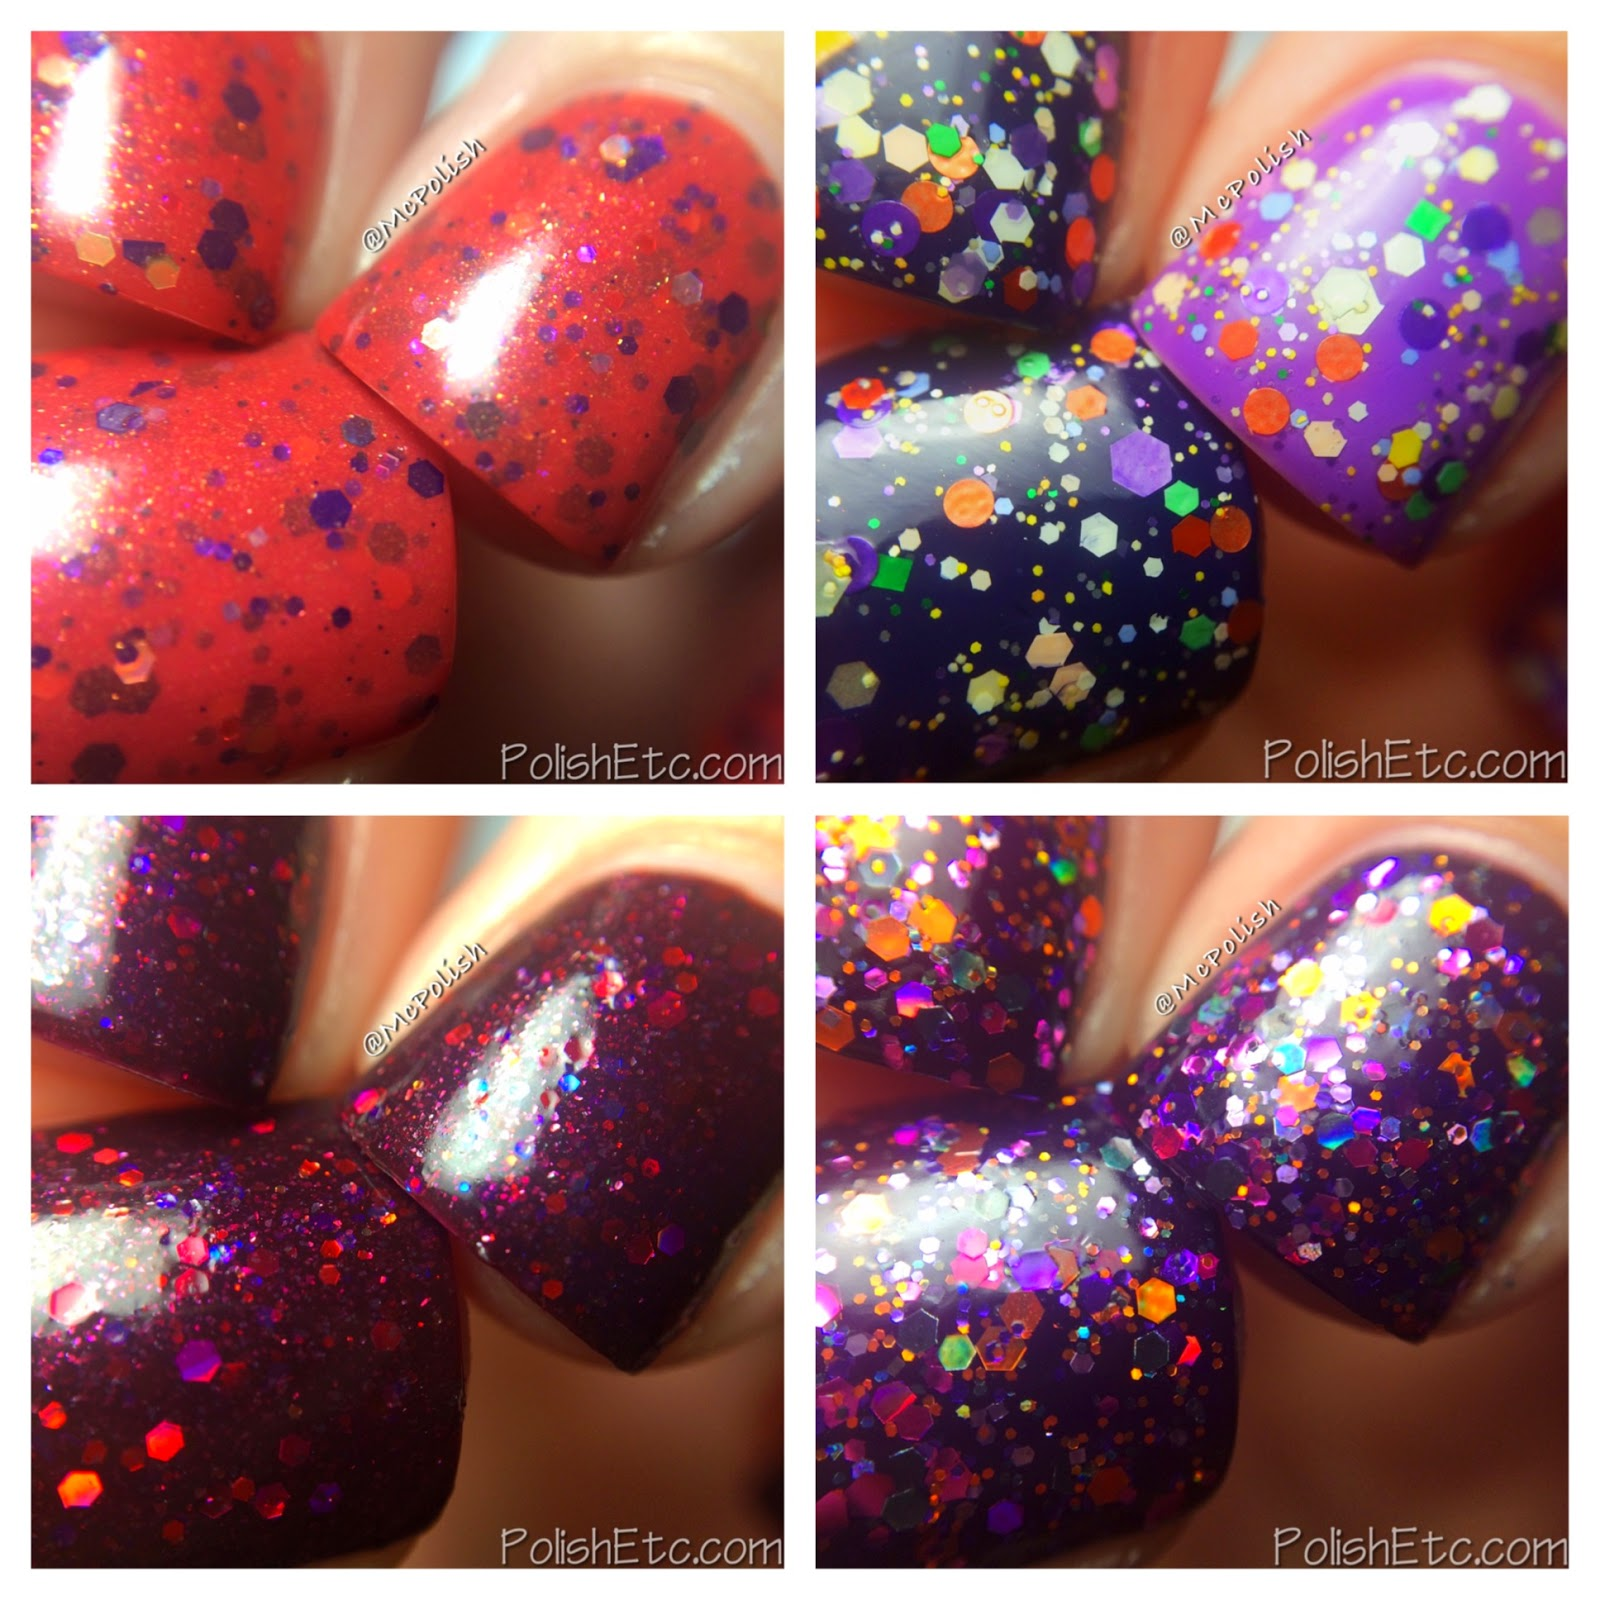 Laquerlicious Halloween 2014 Collection - McPolish